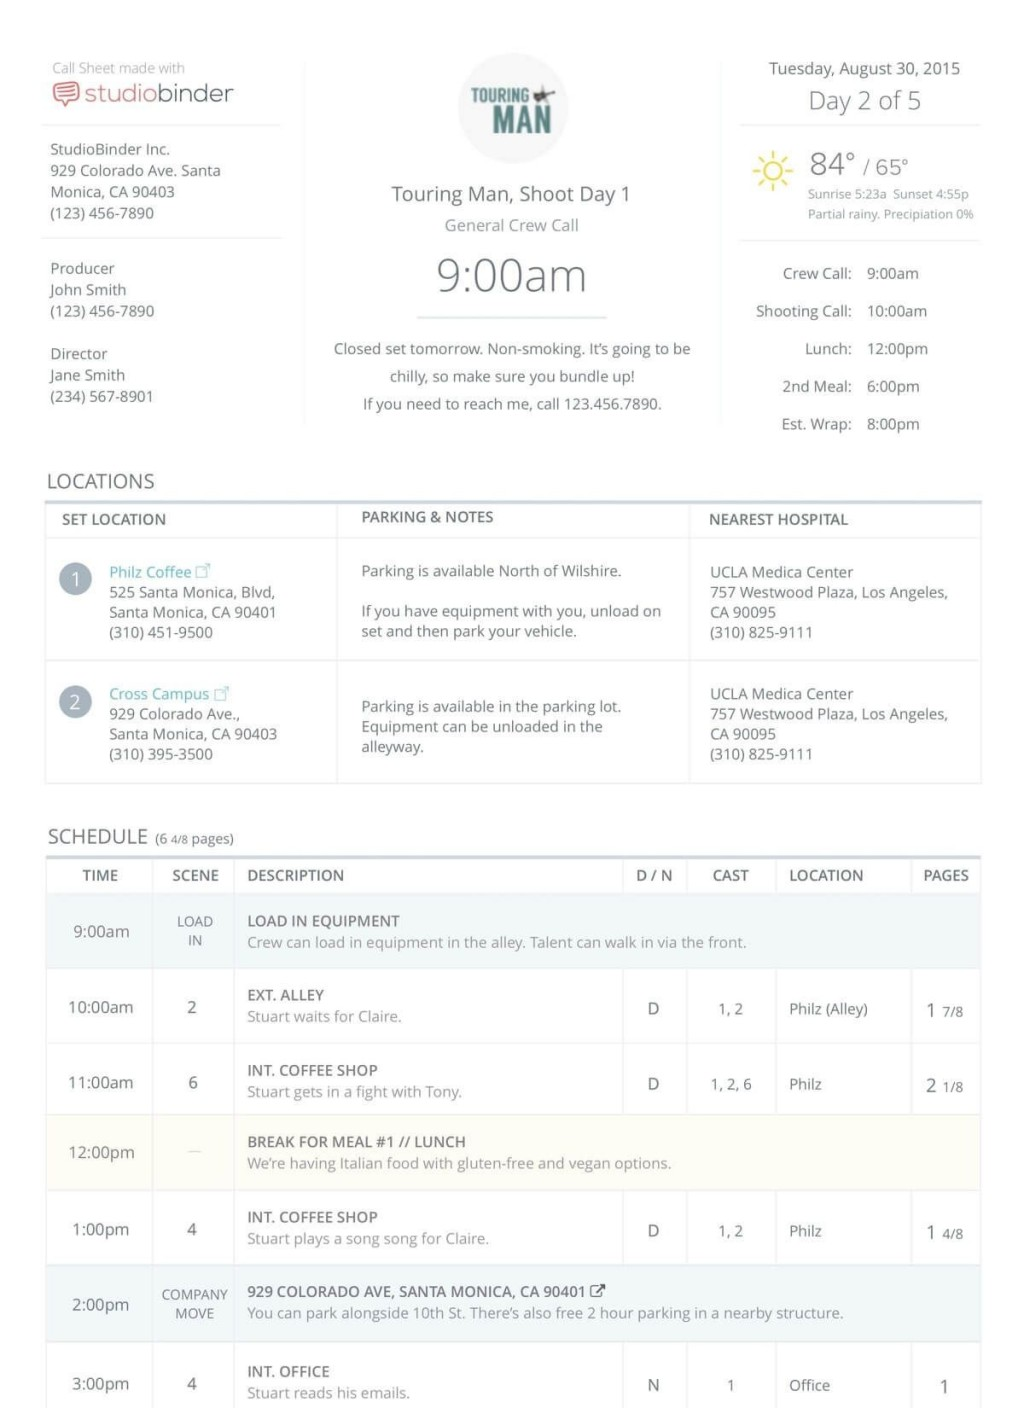 009 Stirring Film Call Sheet Template Image  Movie Excel Example Google DocLarge